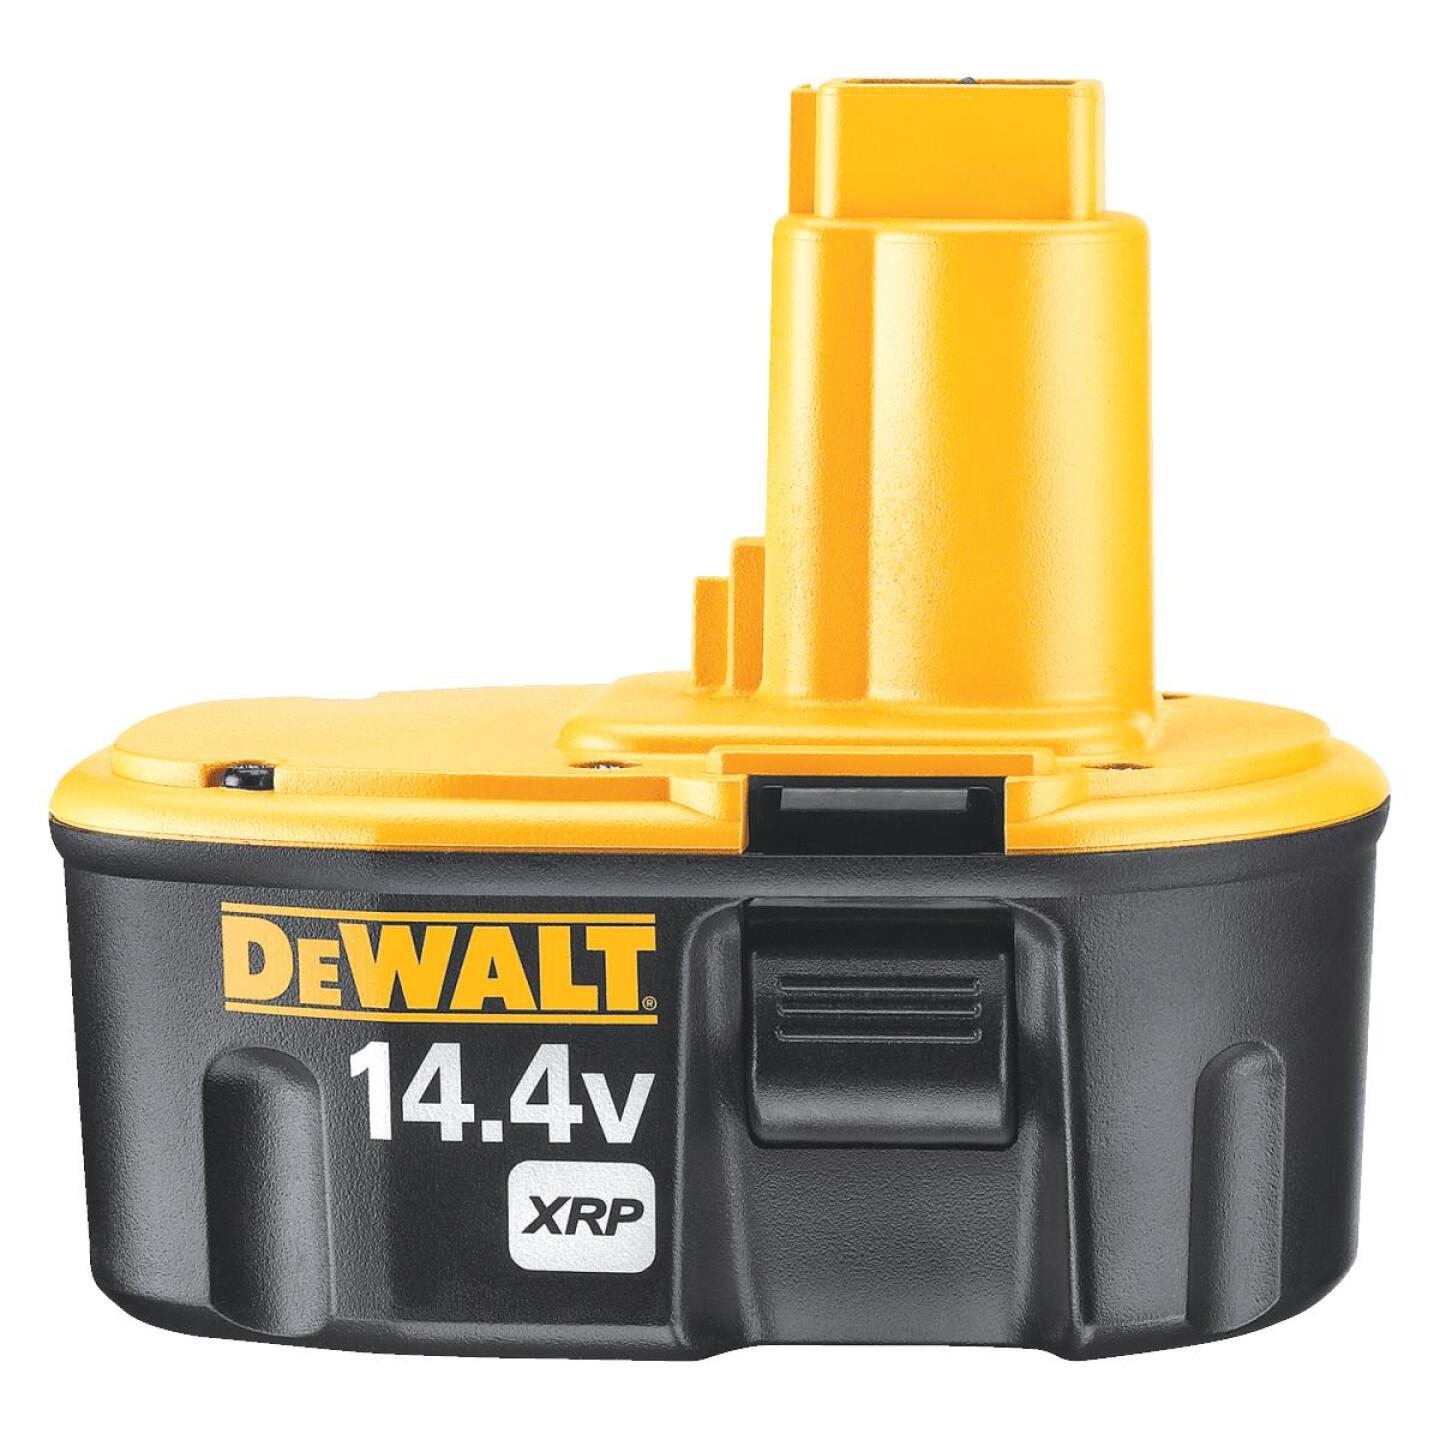 DeWalt 14.4 Volt XRP Nickel-Cadmium 2.4 Ah Tool Battery Image 2